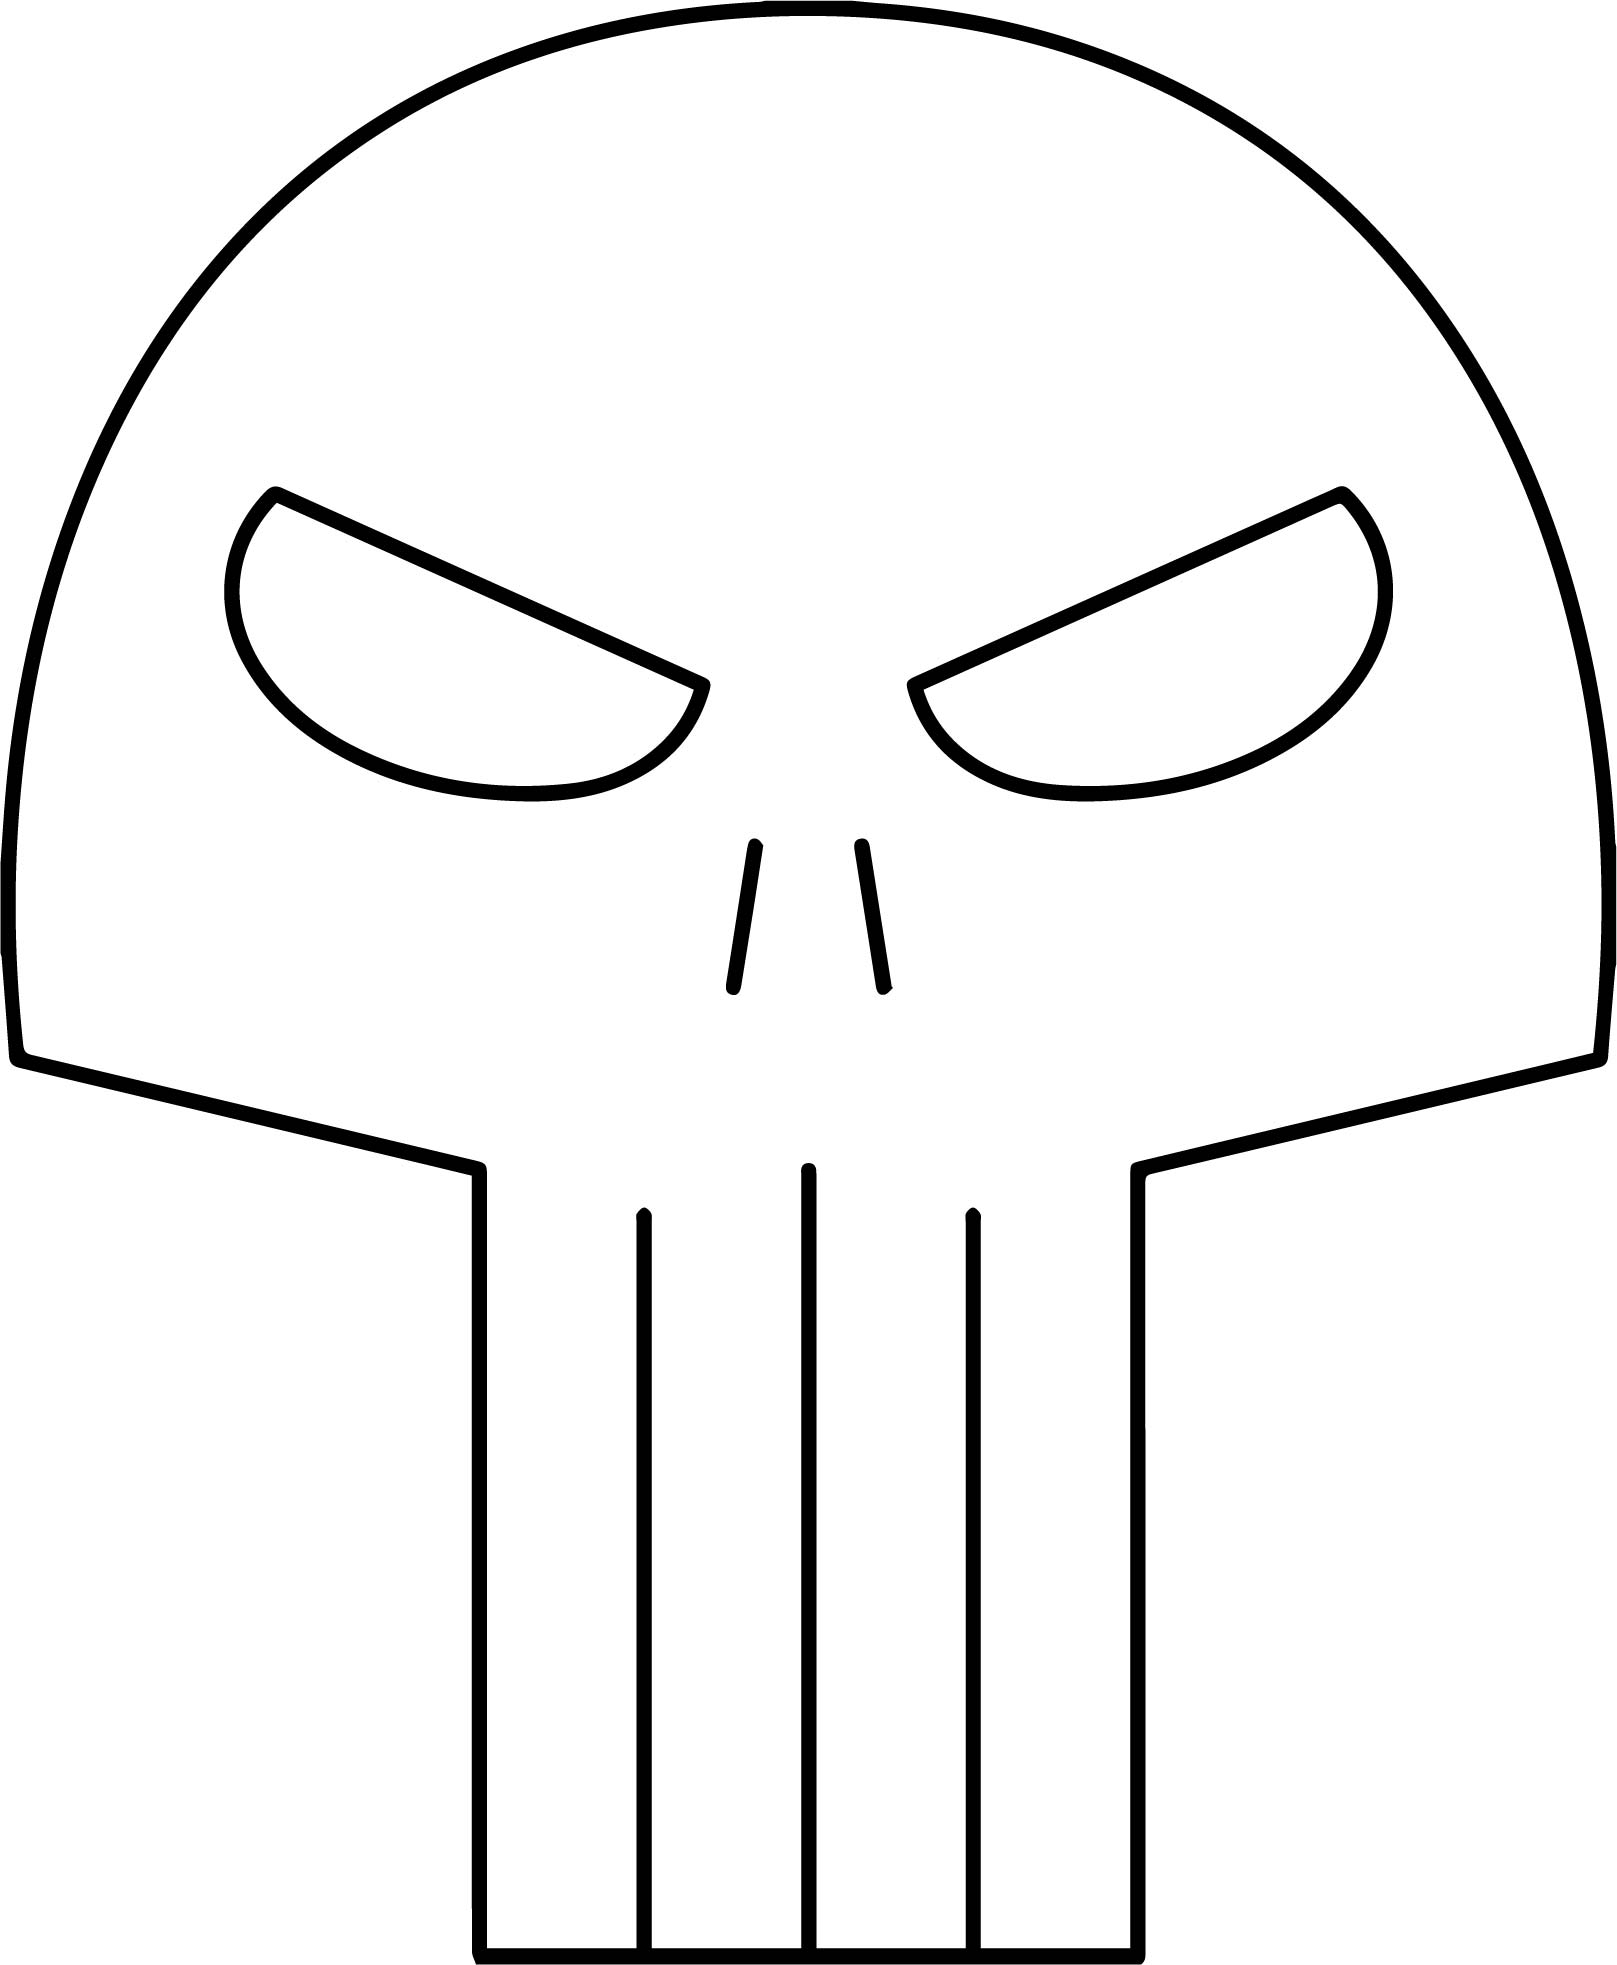 Superheroes Super Hero Mask The Punisher Coloring Page